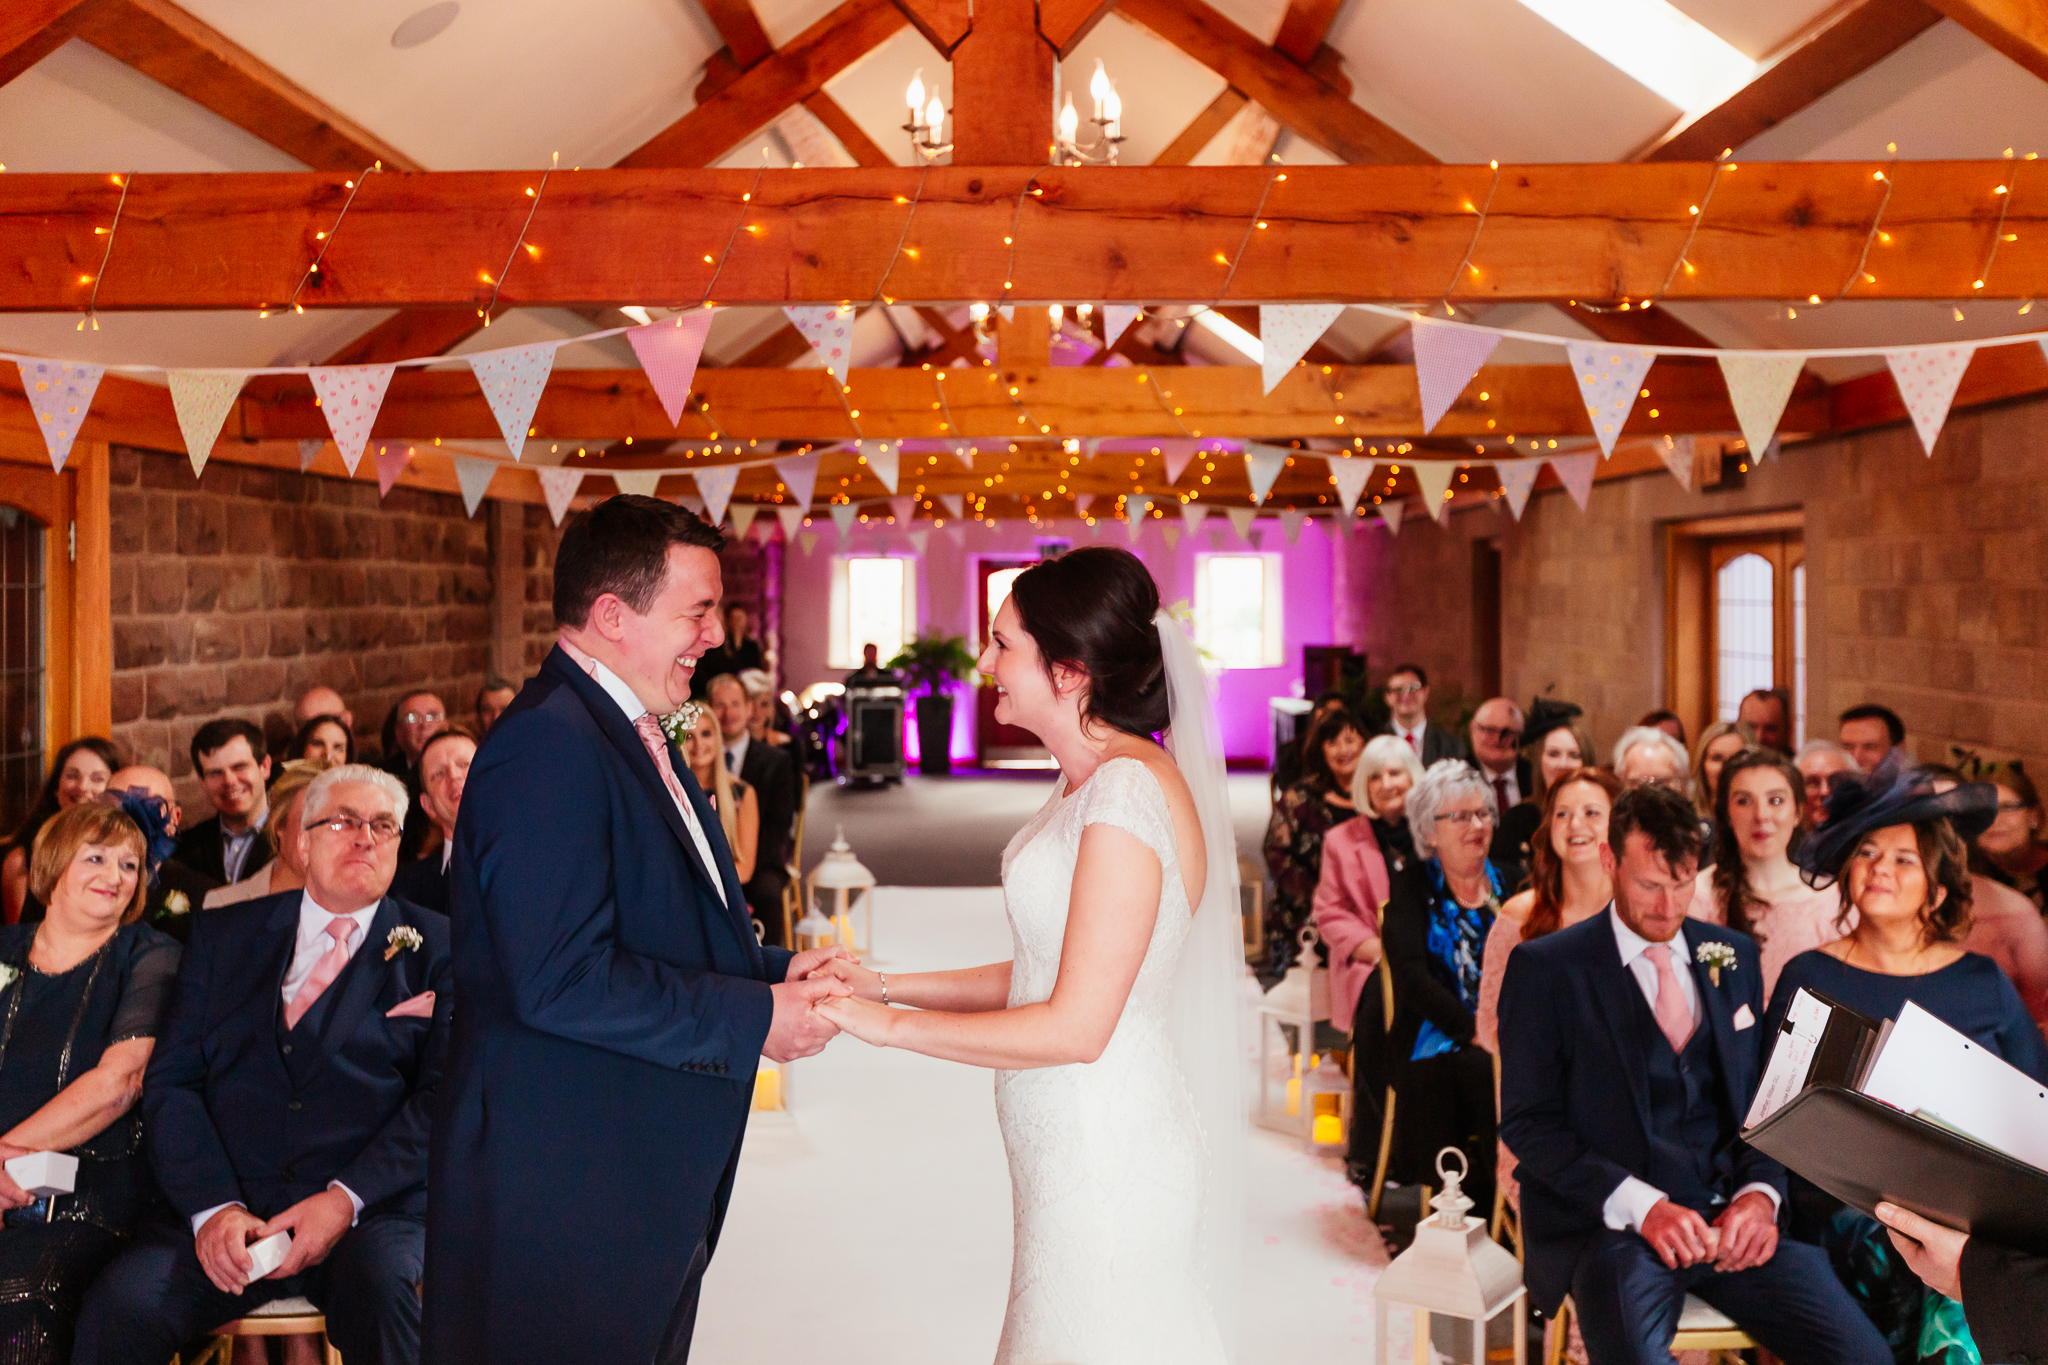 Heaton-House-Farm-Cheshire-Wedding-14.jpg